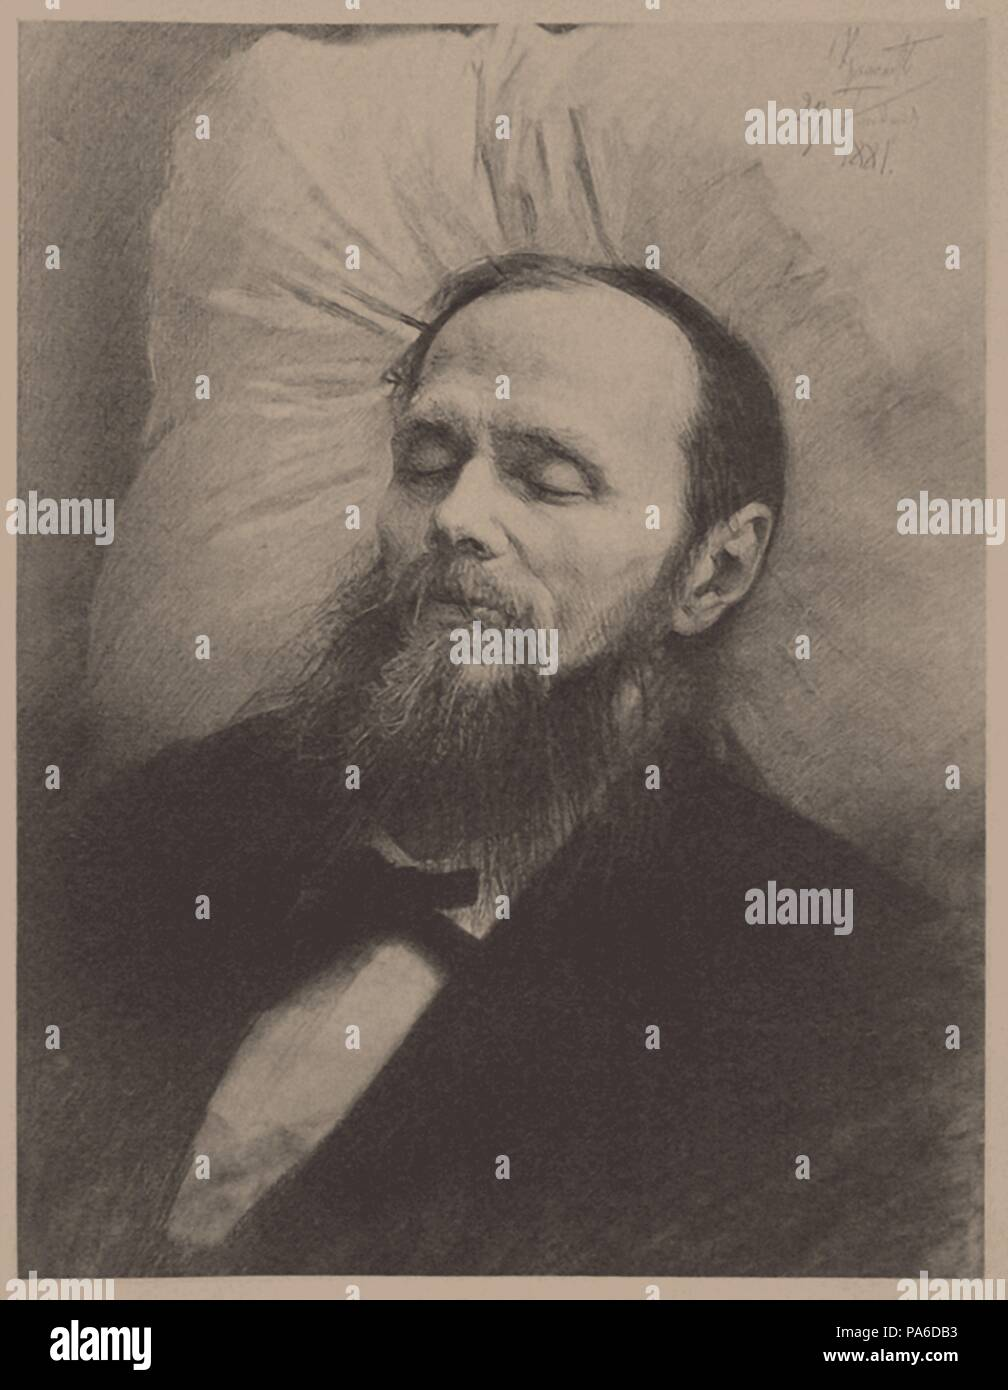 Fyodor Dostoyevsky on the deathbed. Museum: State Central Literary Museum, Moscow. Stock Photo